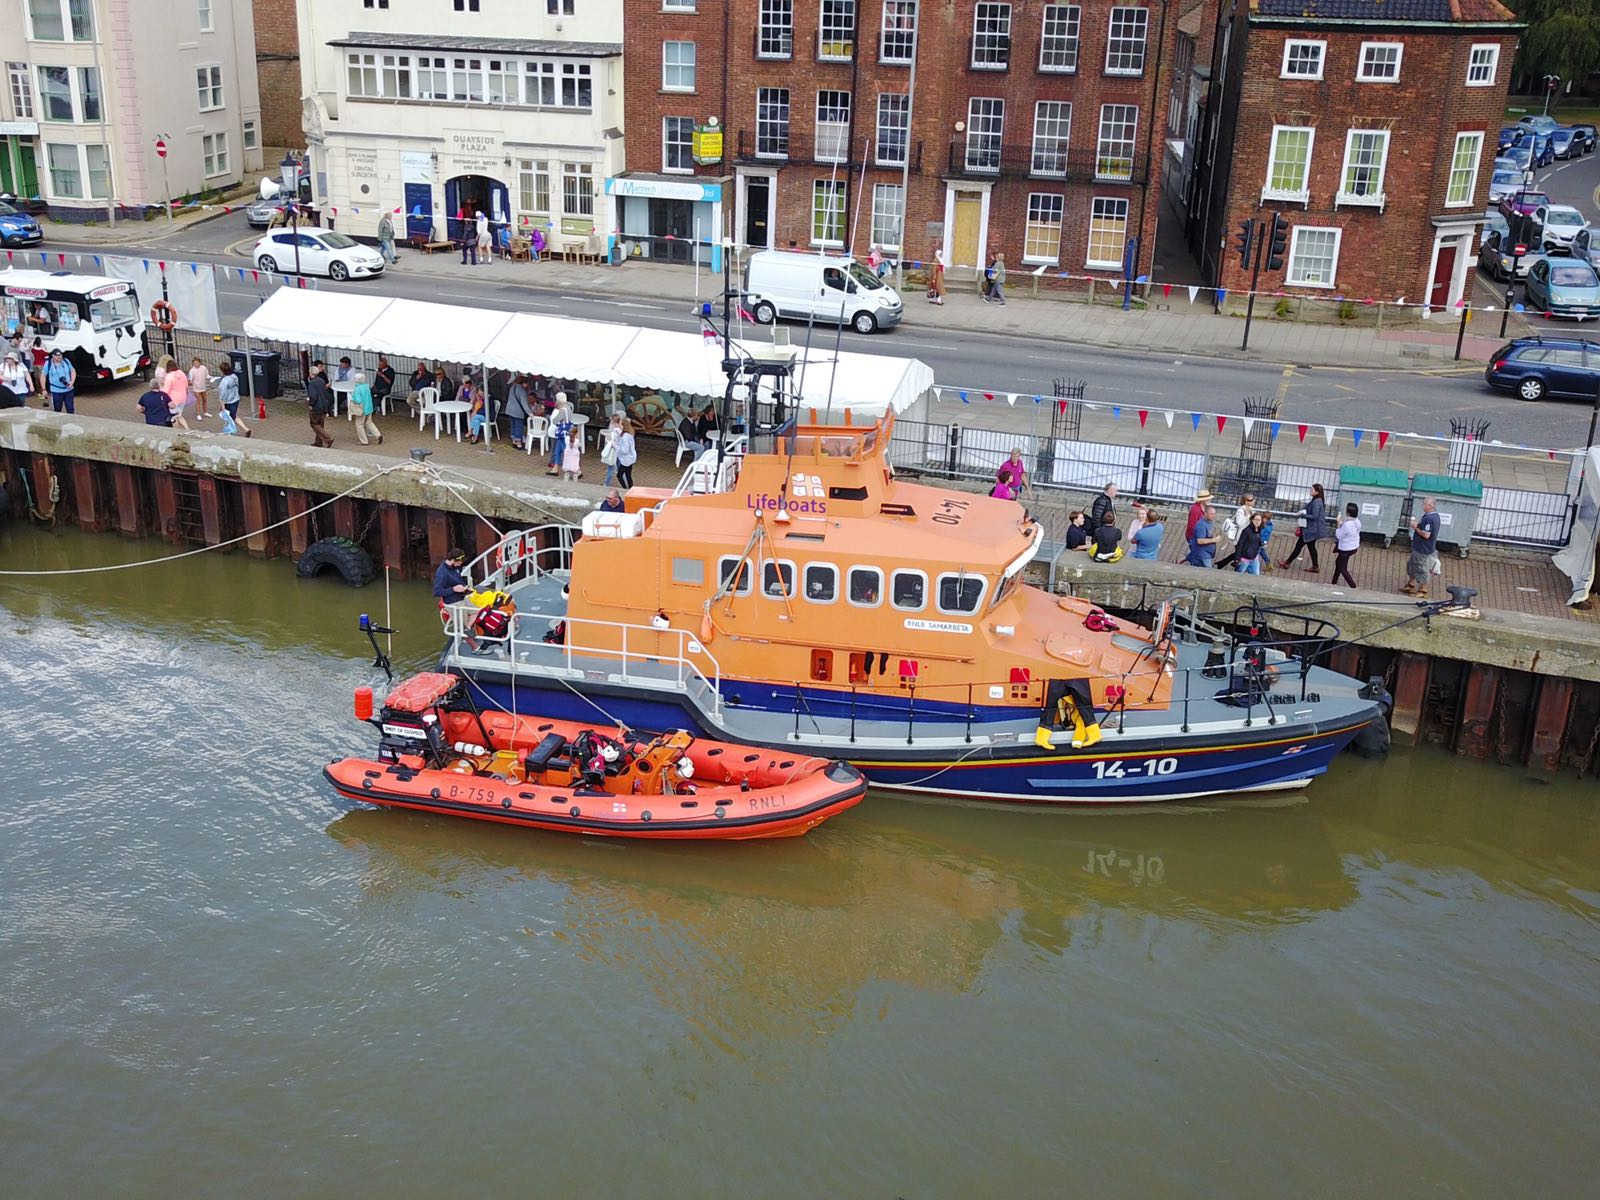 Both RNLI lifeboats at the festival